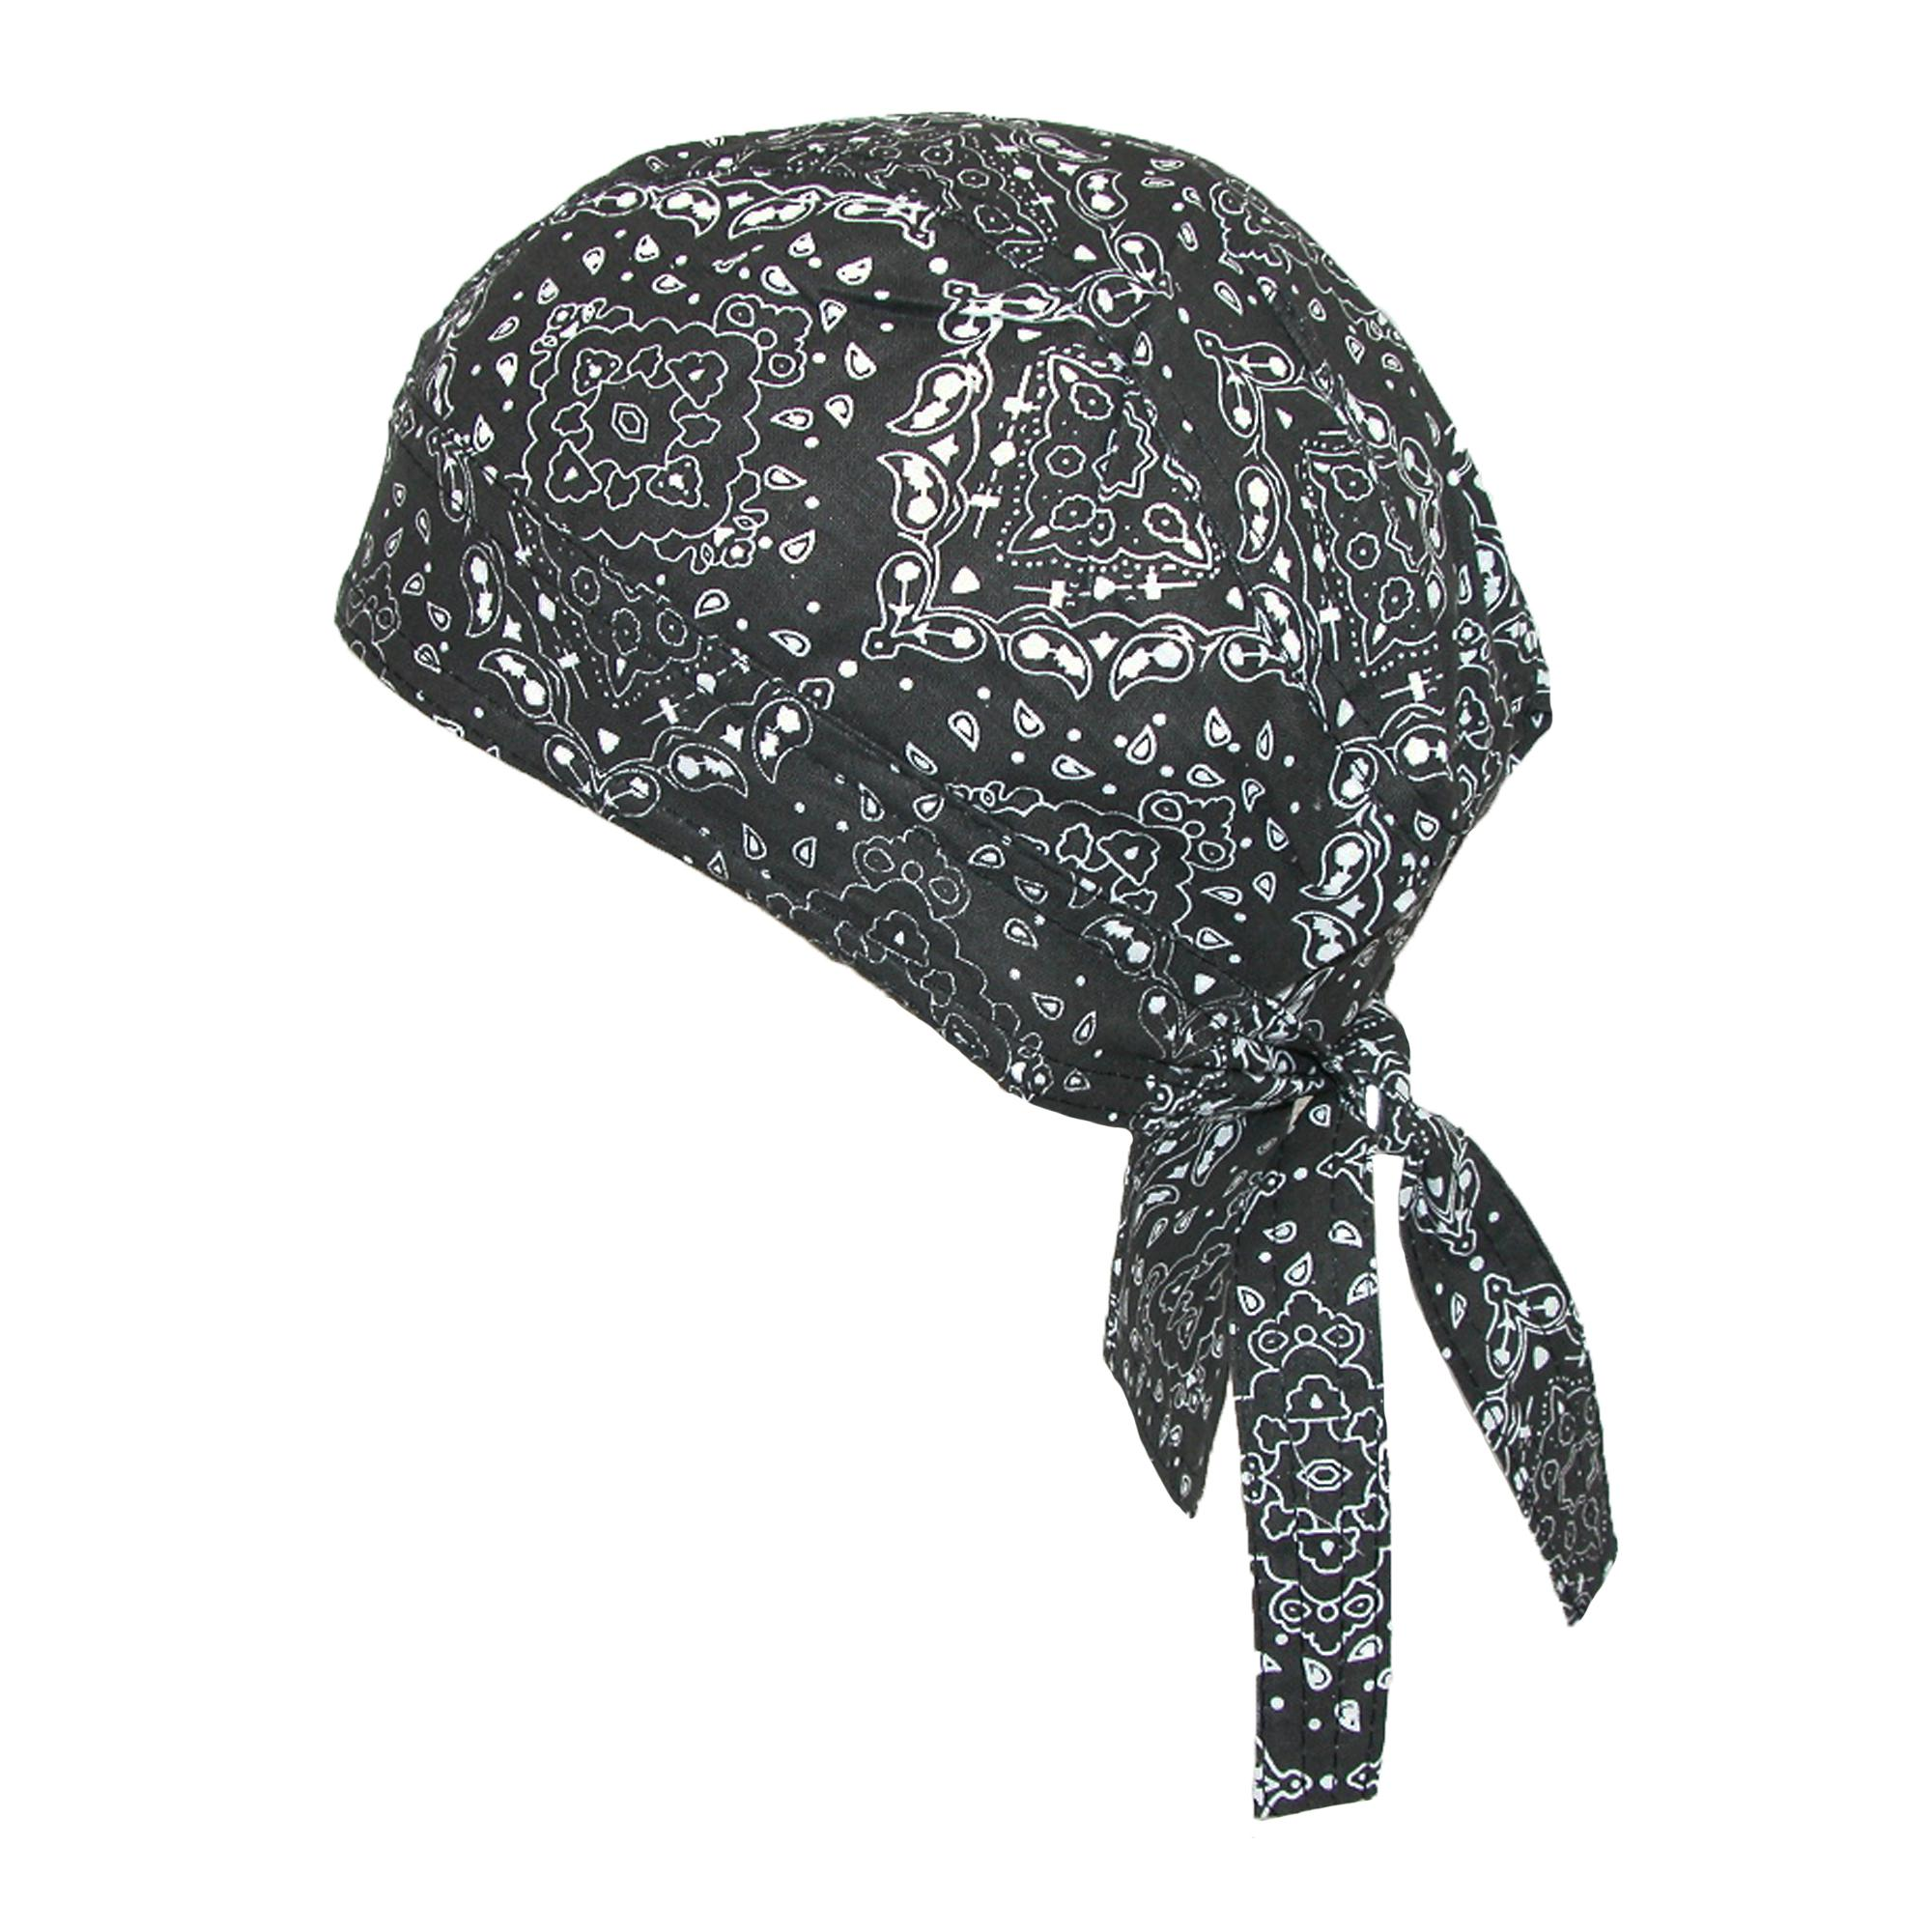 CTM Men's Cotton Unlined Paisley Biker Do Rag Cap